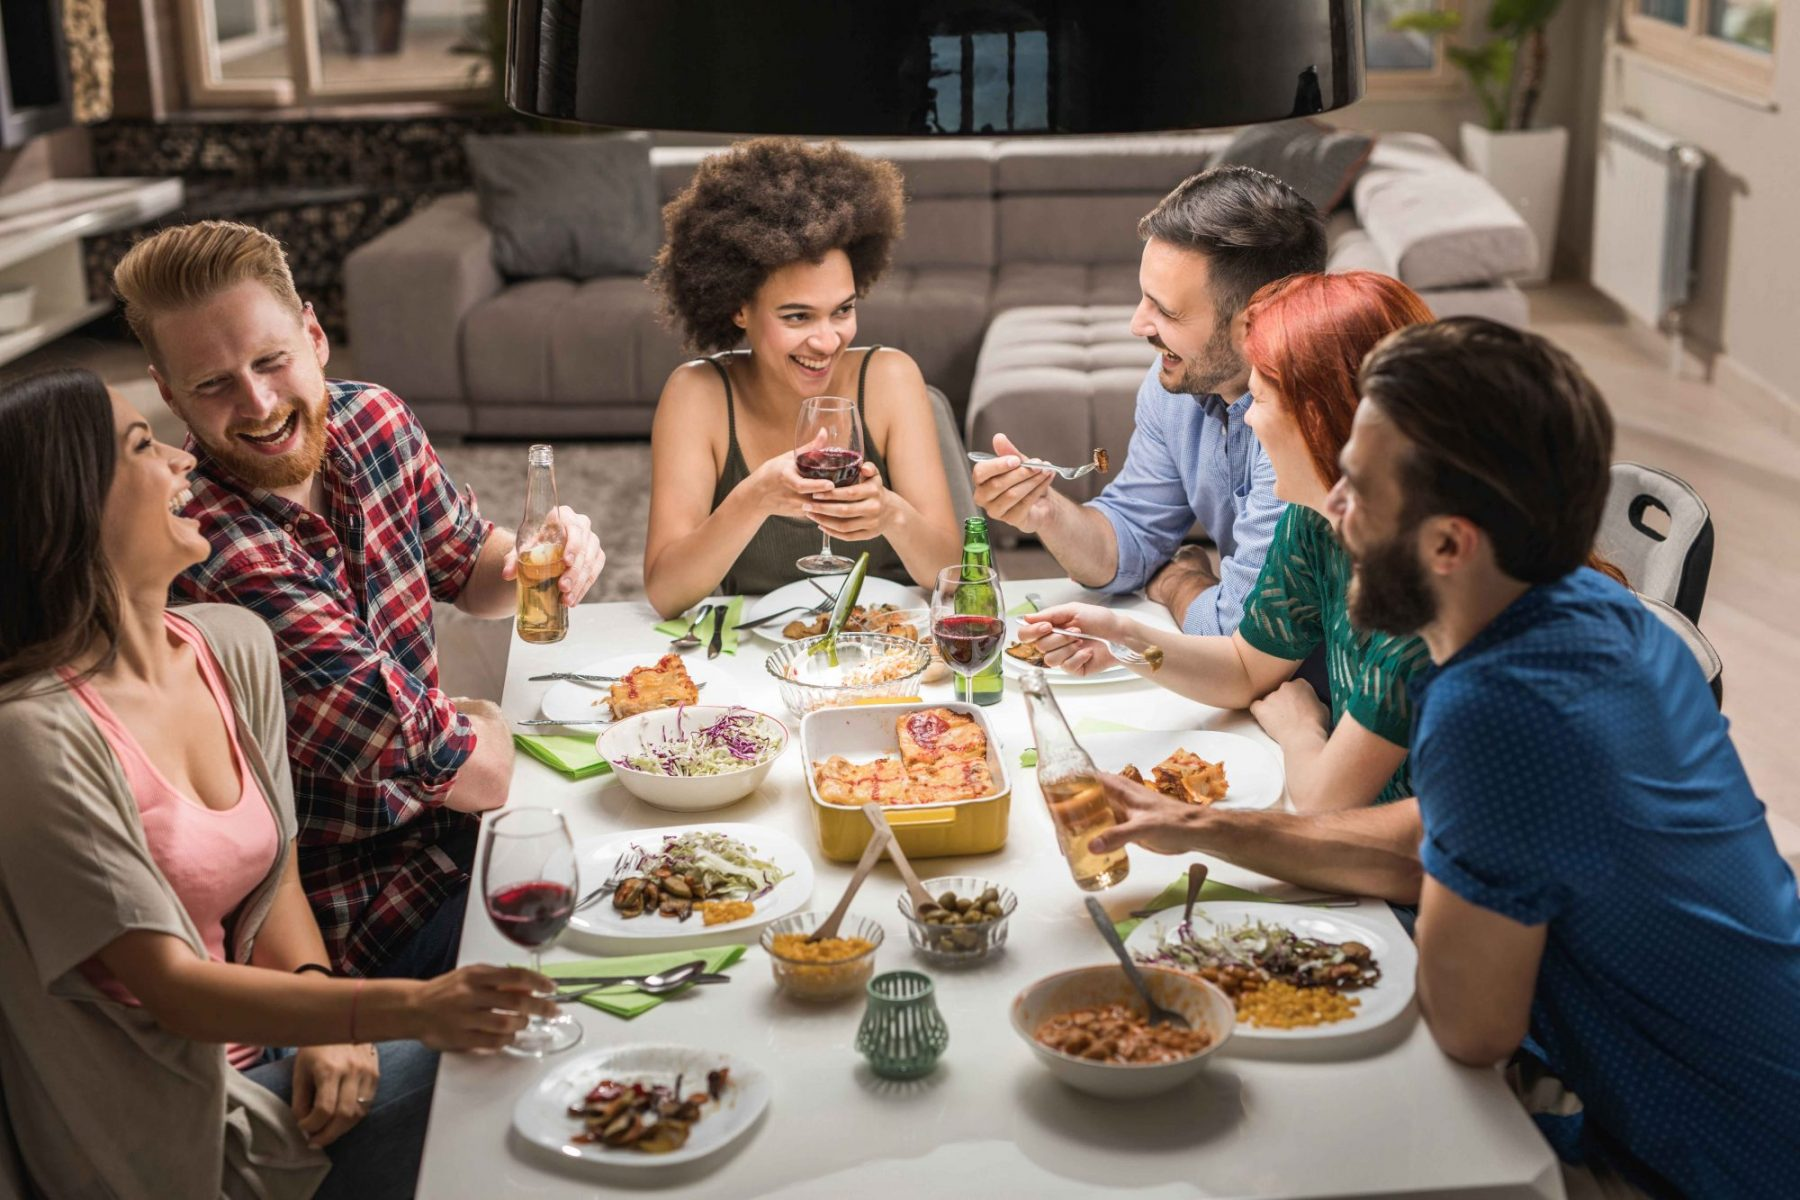 Double The Fun This Year By Hosting a Friendsgiving